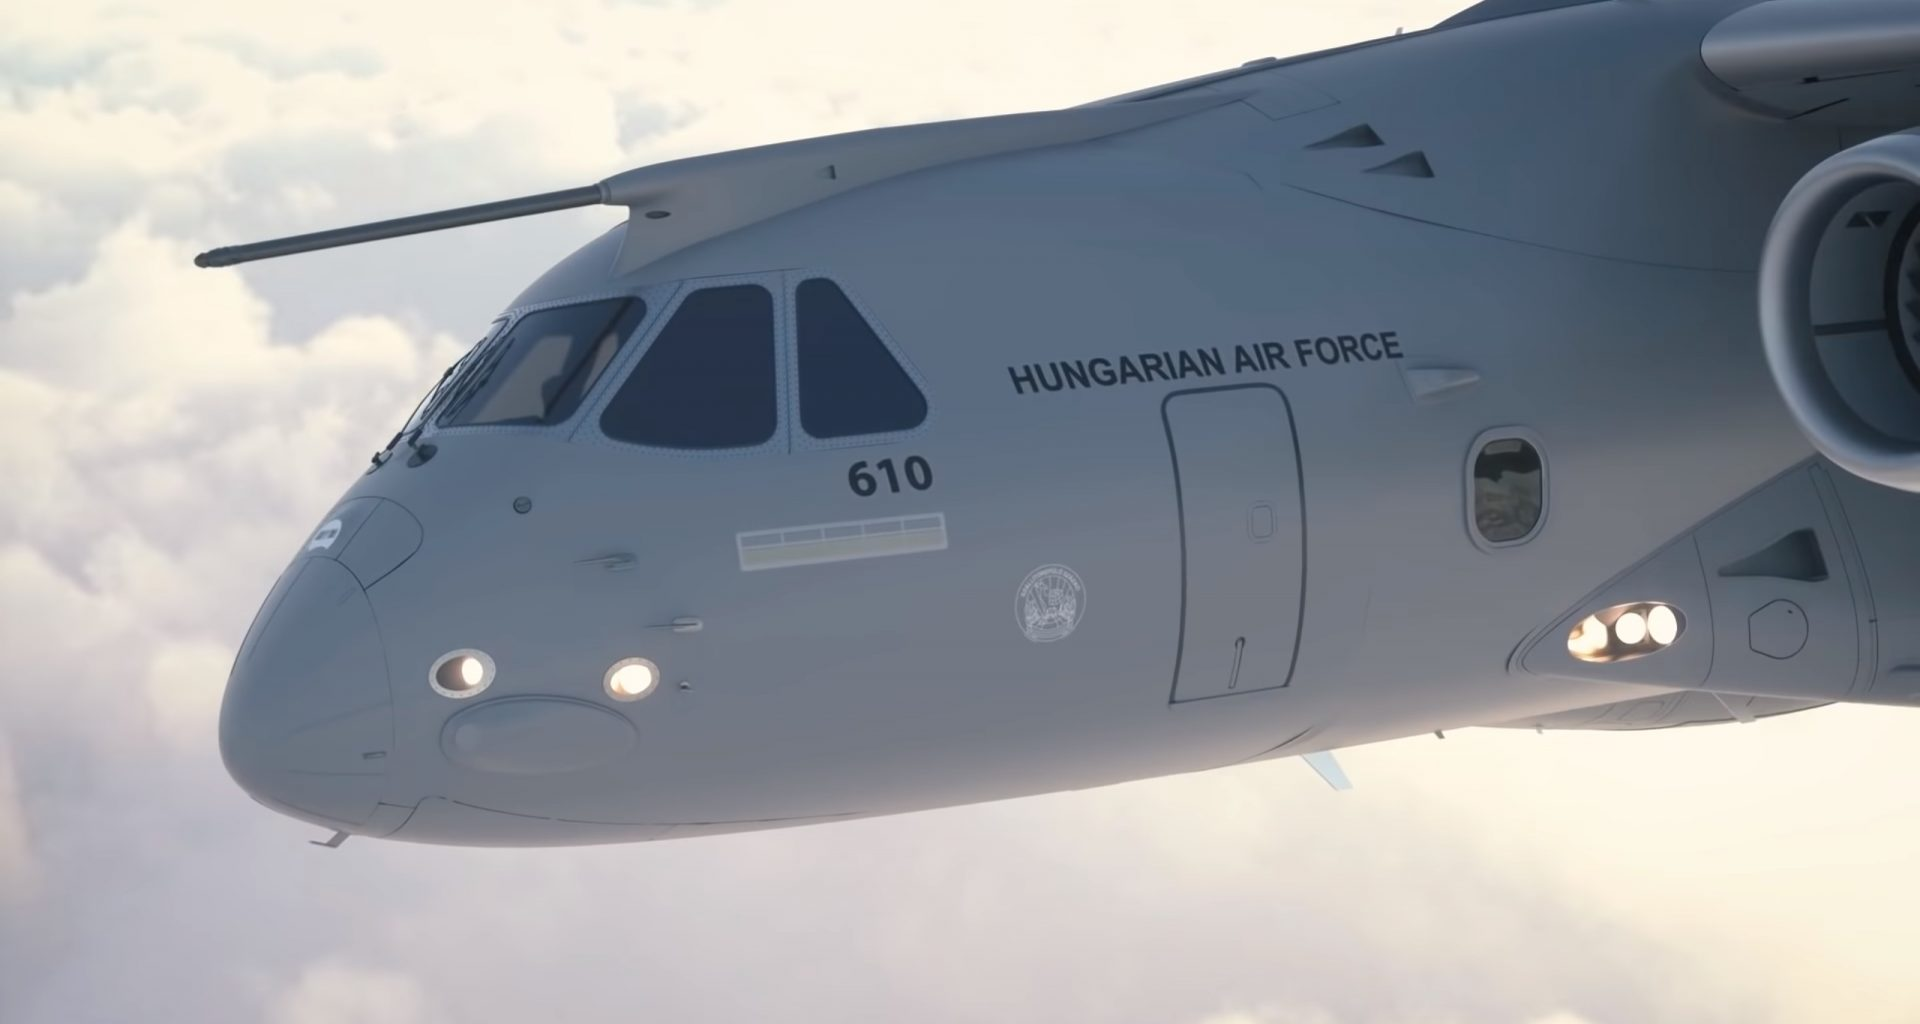 Hungarian army buys Embraer aircraft kc-390